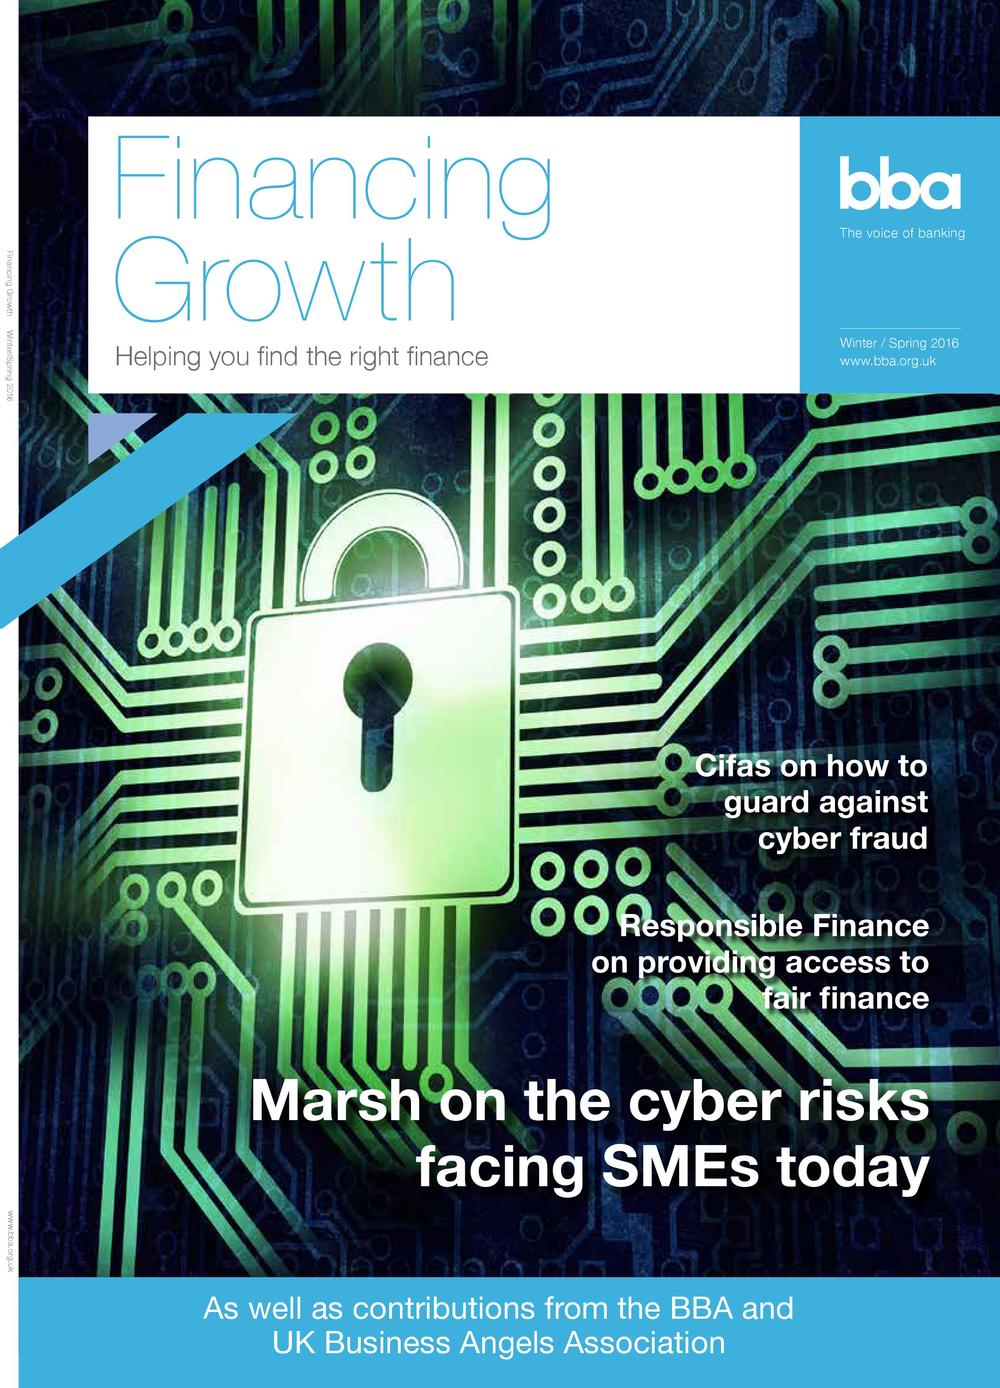 British Bankers' Association (BBA) - Financing Growth magazine